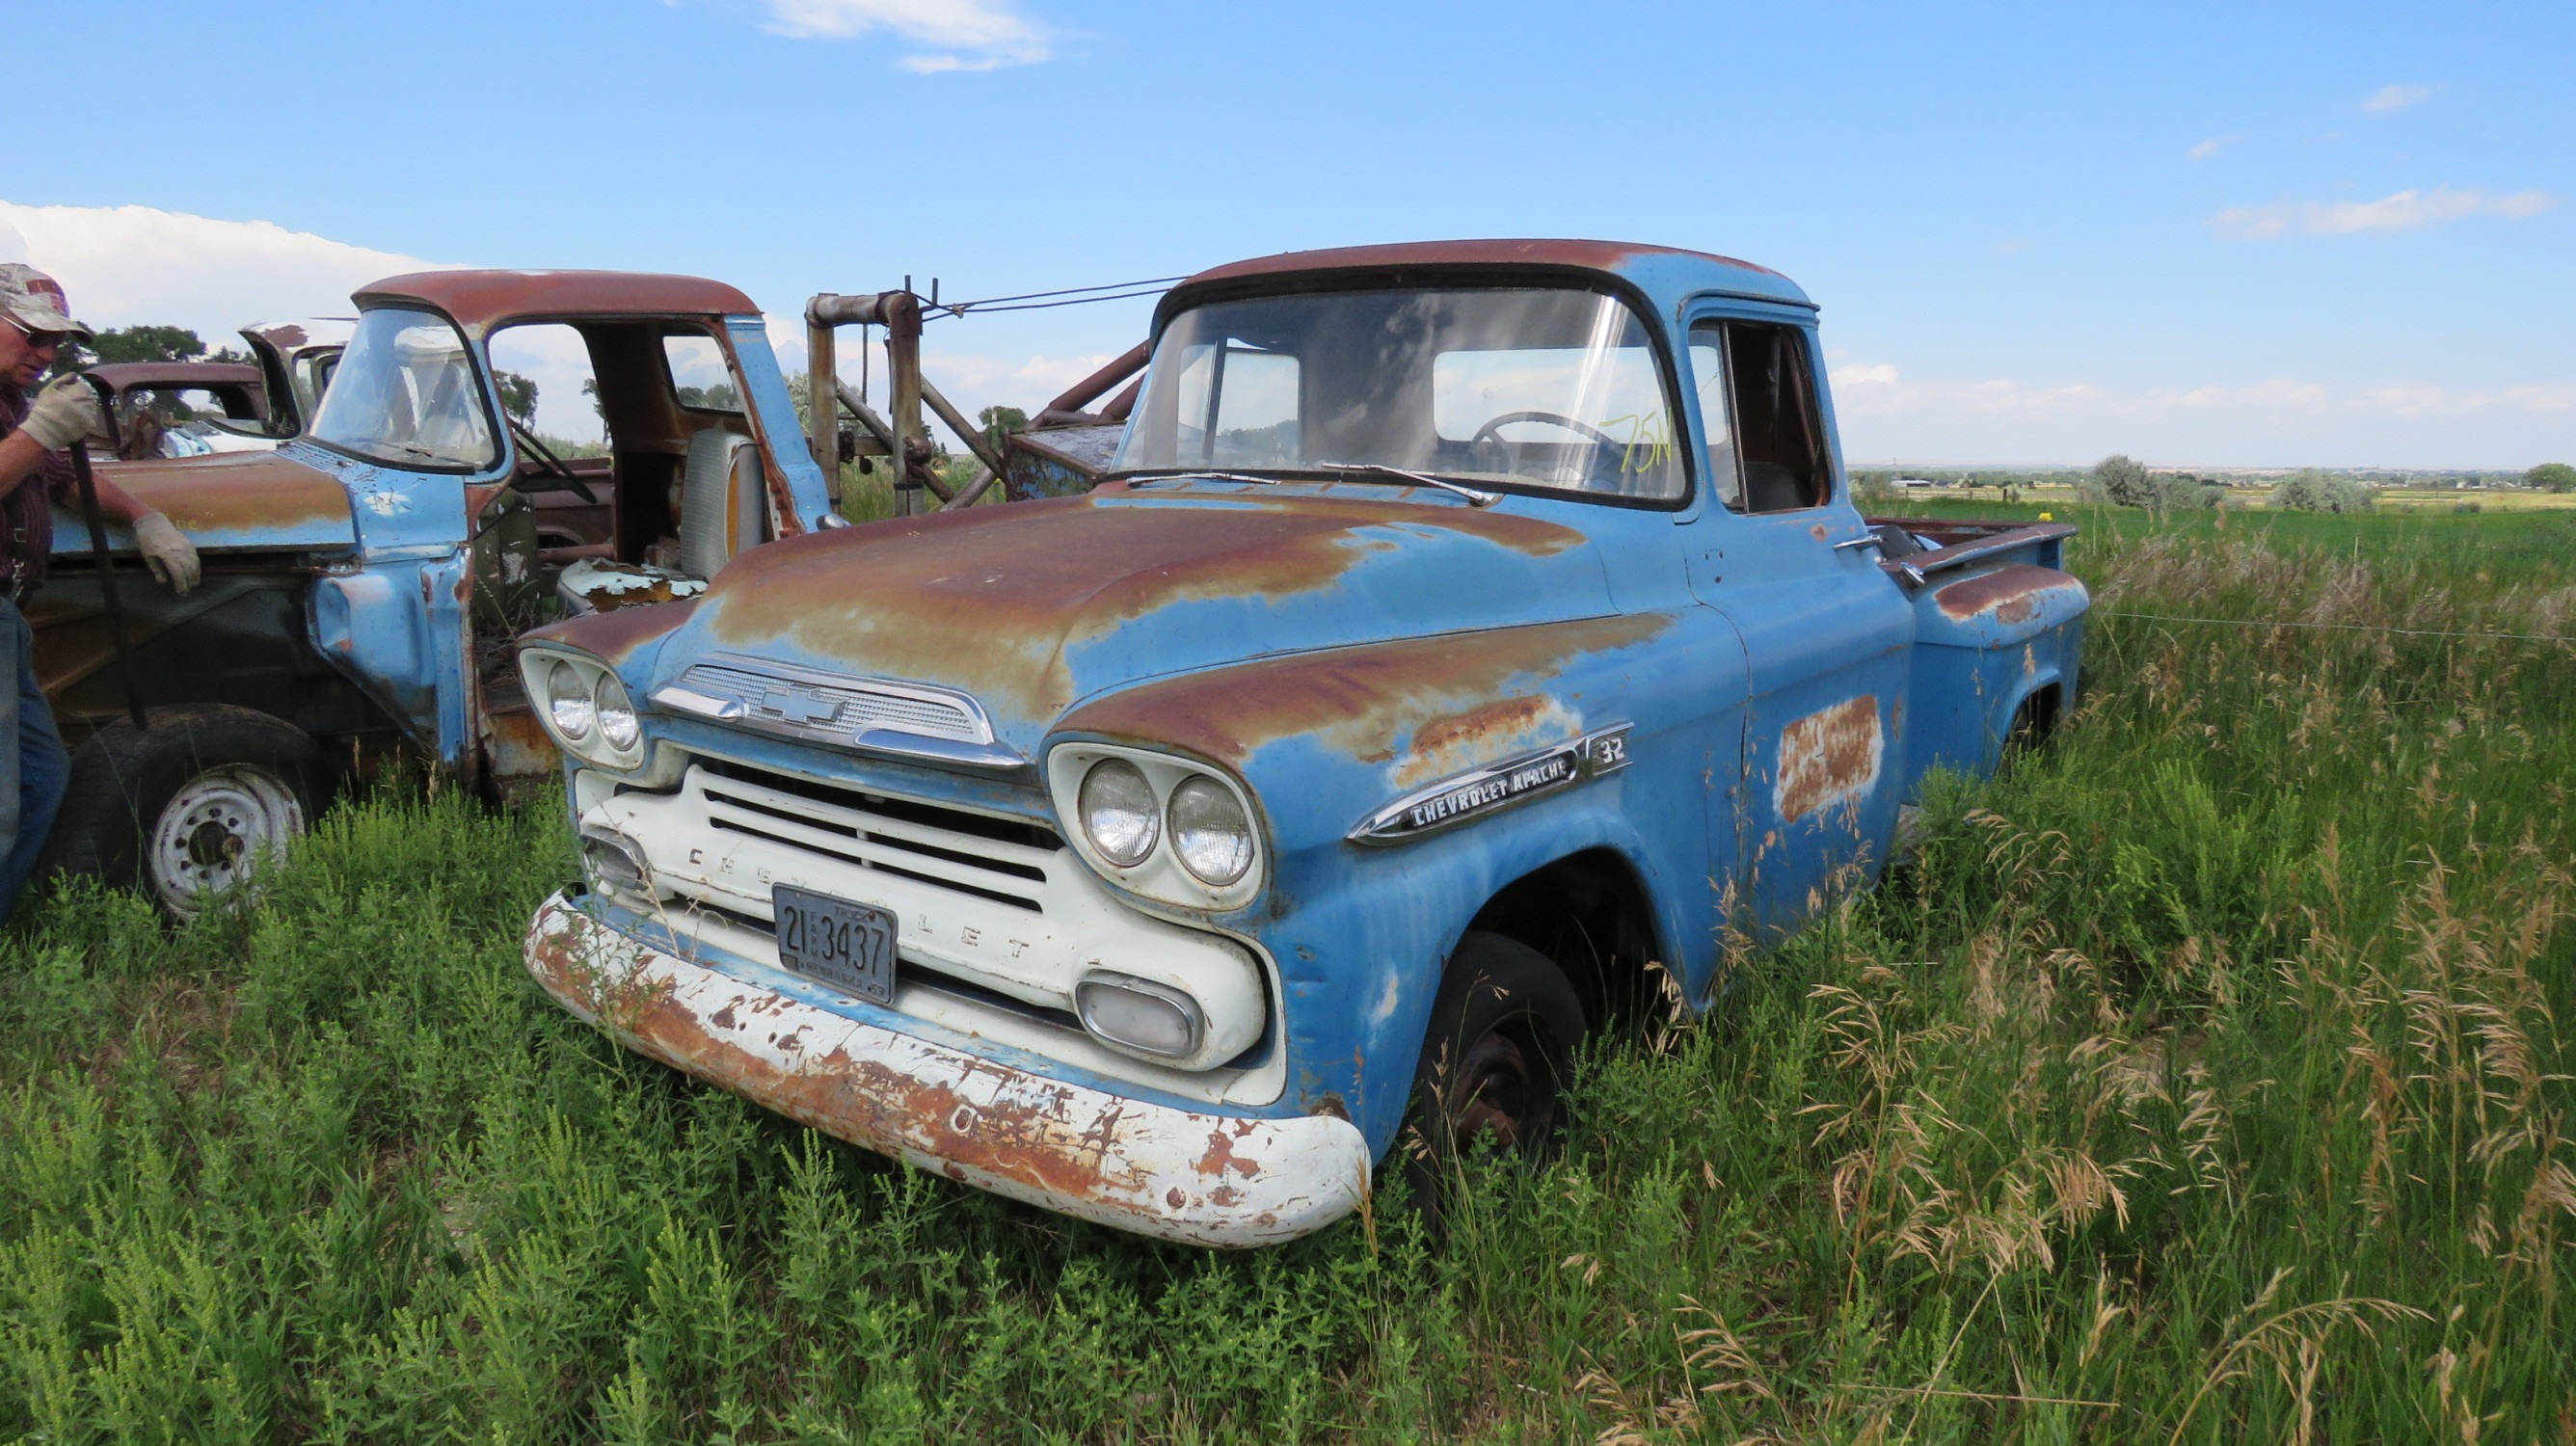 1959 CHEVROLET STEPSIDE PICKUP - Image 1